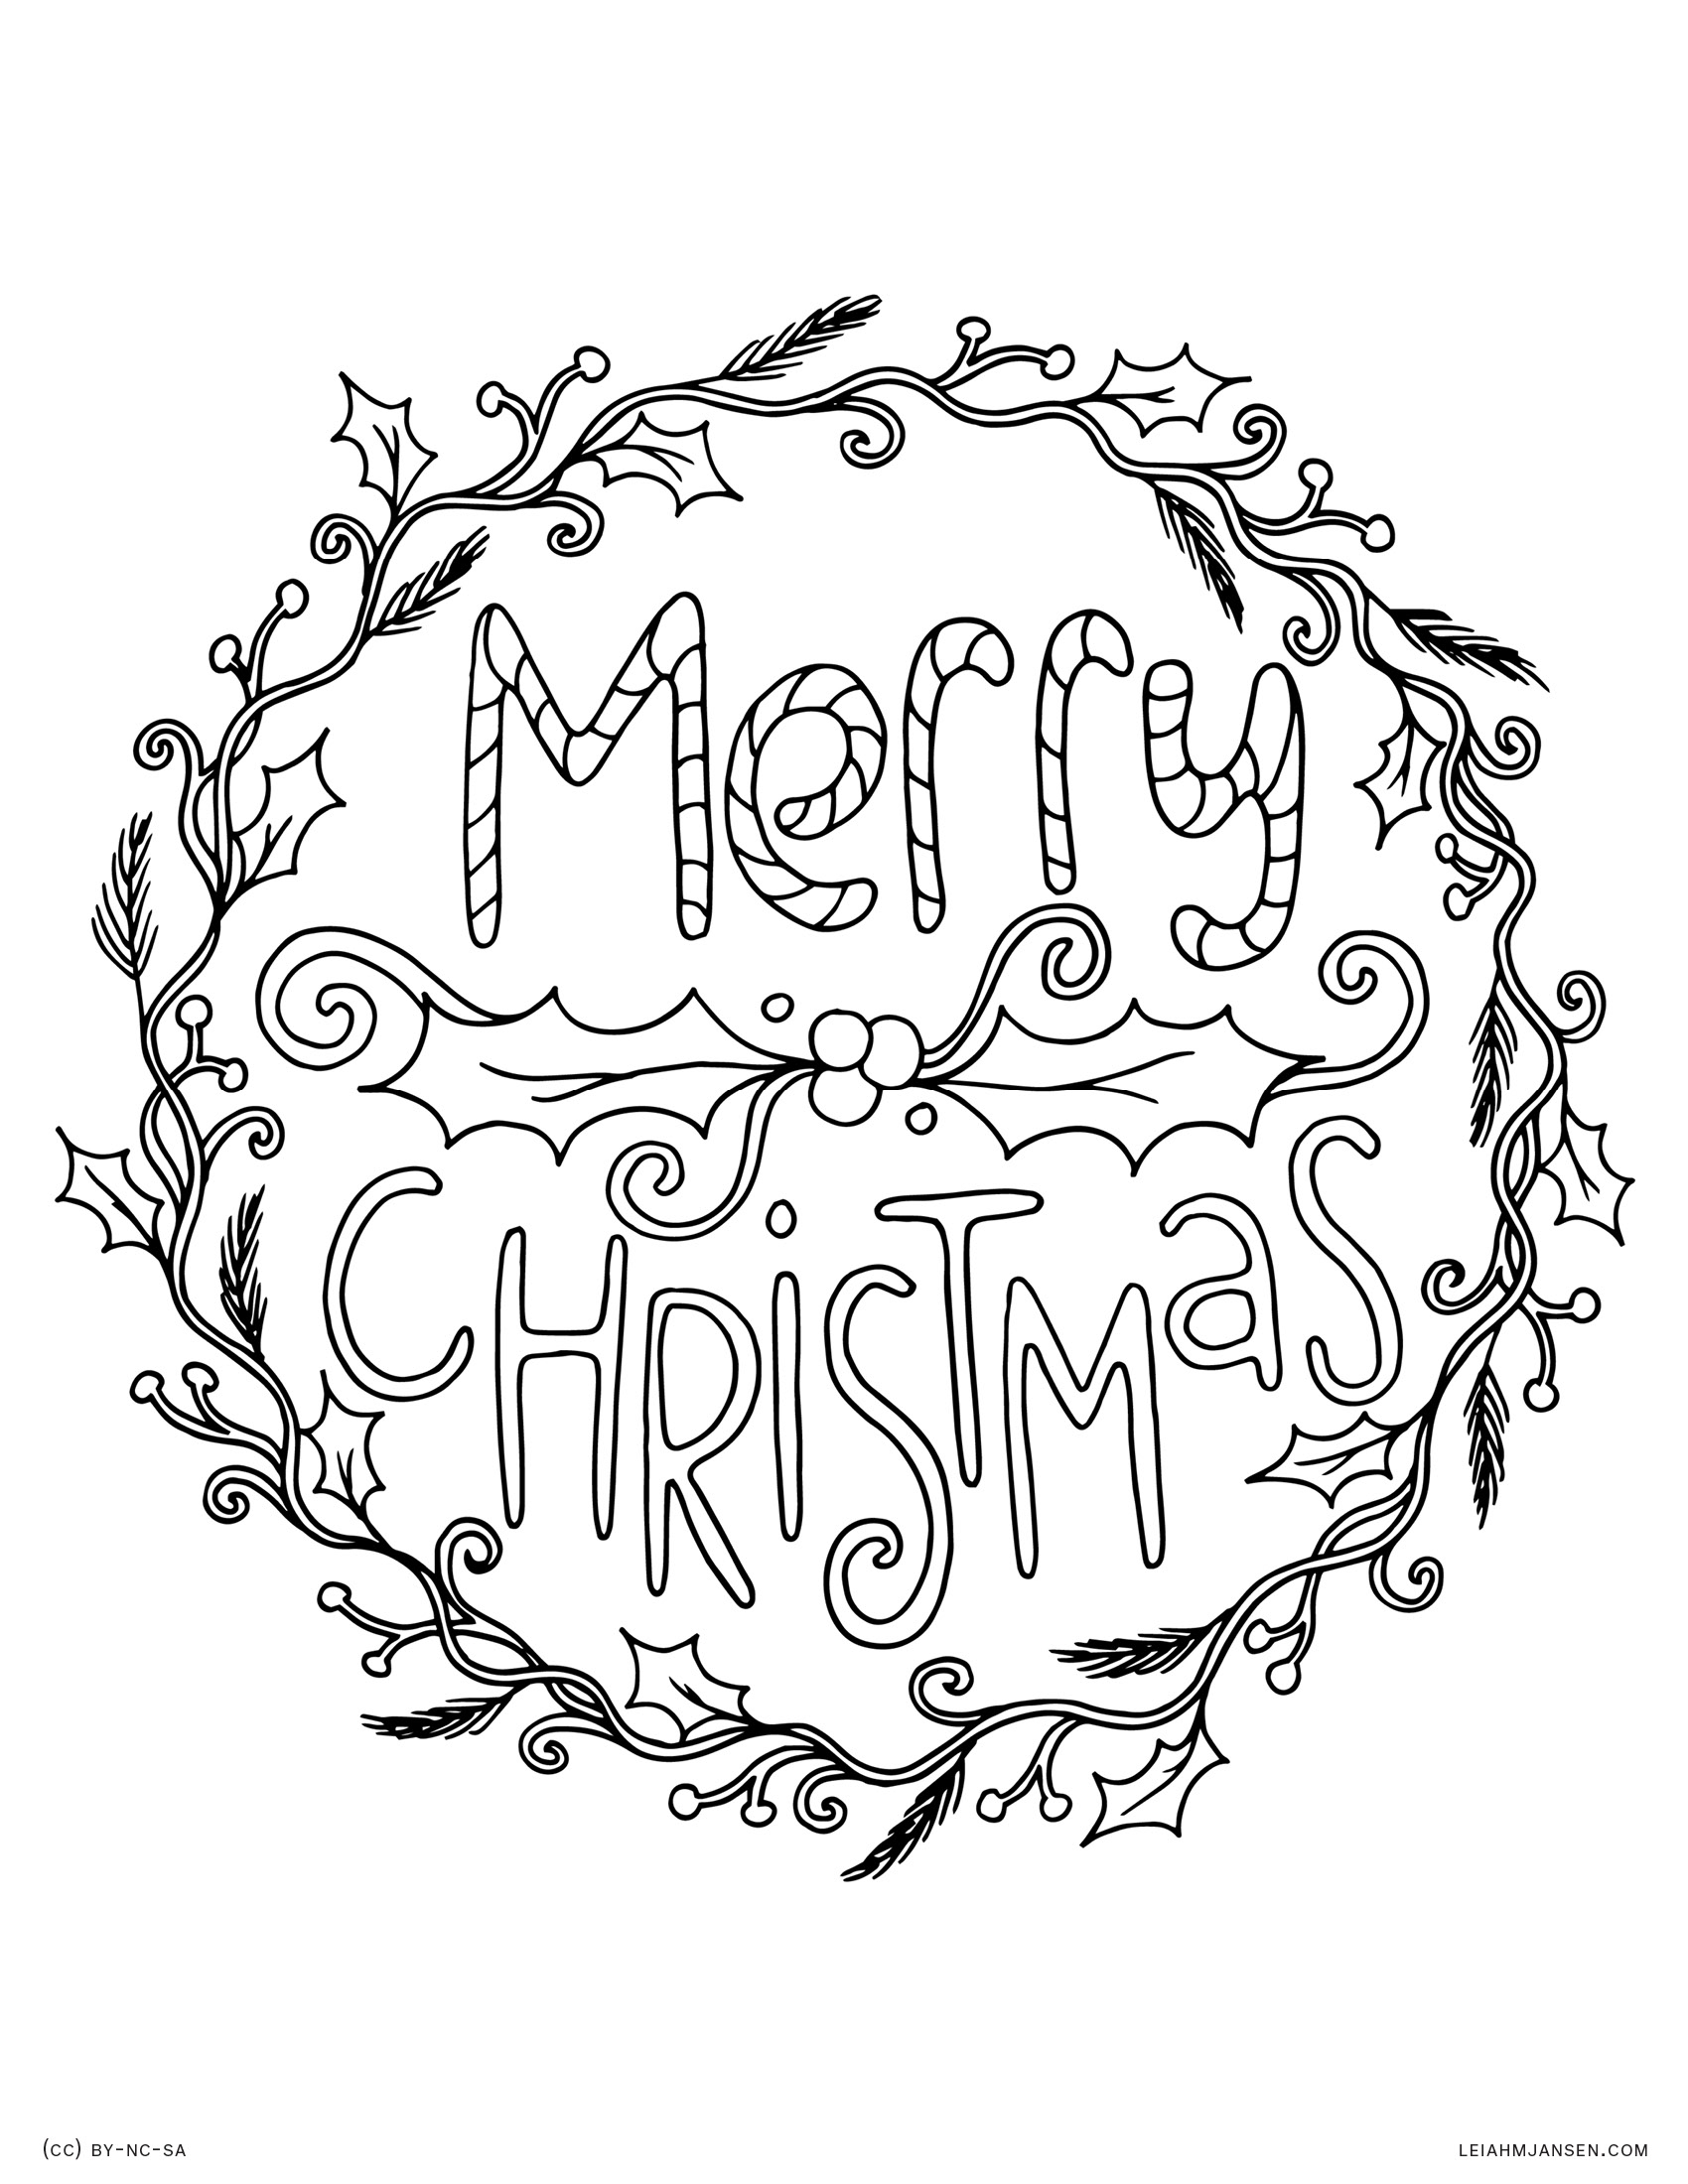 Coloring Pages Of Merry Christmas With For Adults Collection Free